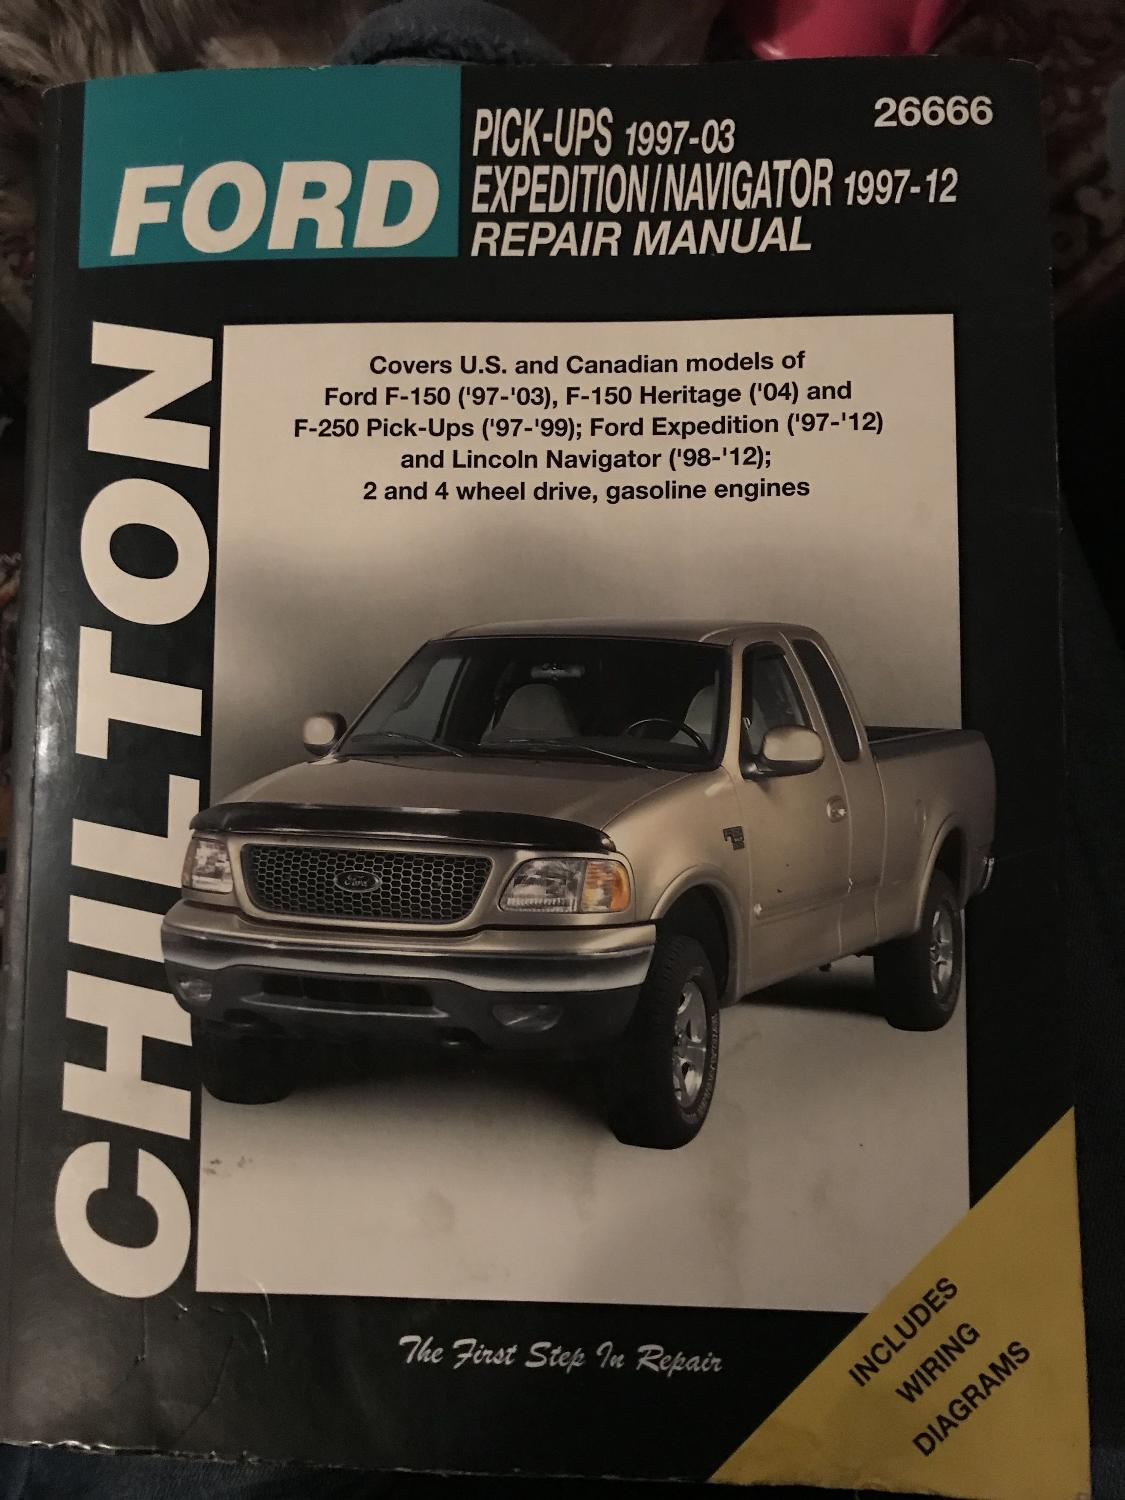 Best Ford Pick Up Truck Repair Manual 1997-2012 $1 for sale in Memphis,  Tennessee for 2019